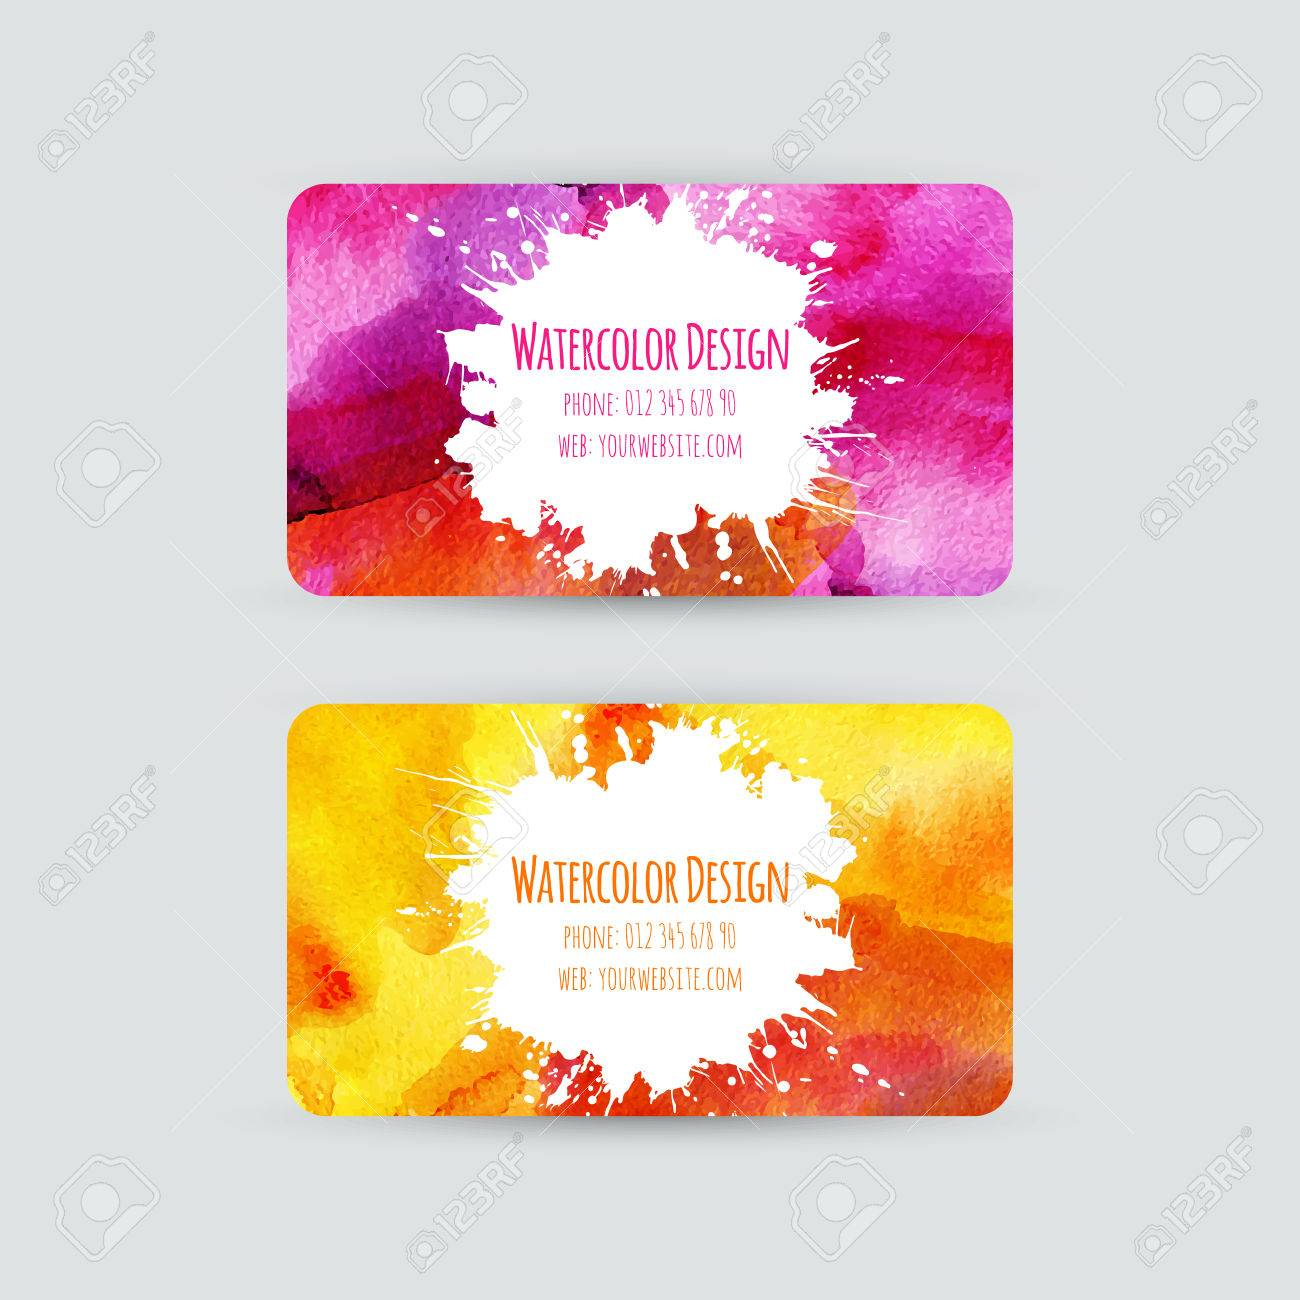 Business Cards Templates Watercolor Design Cards With Bright